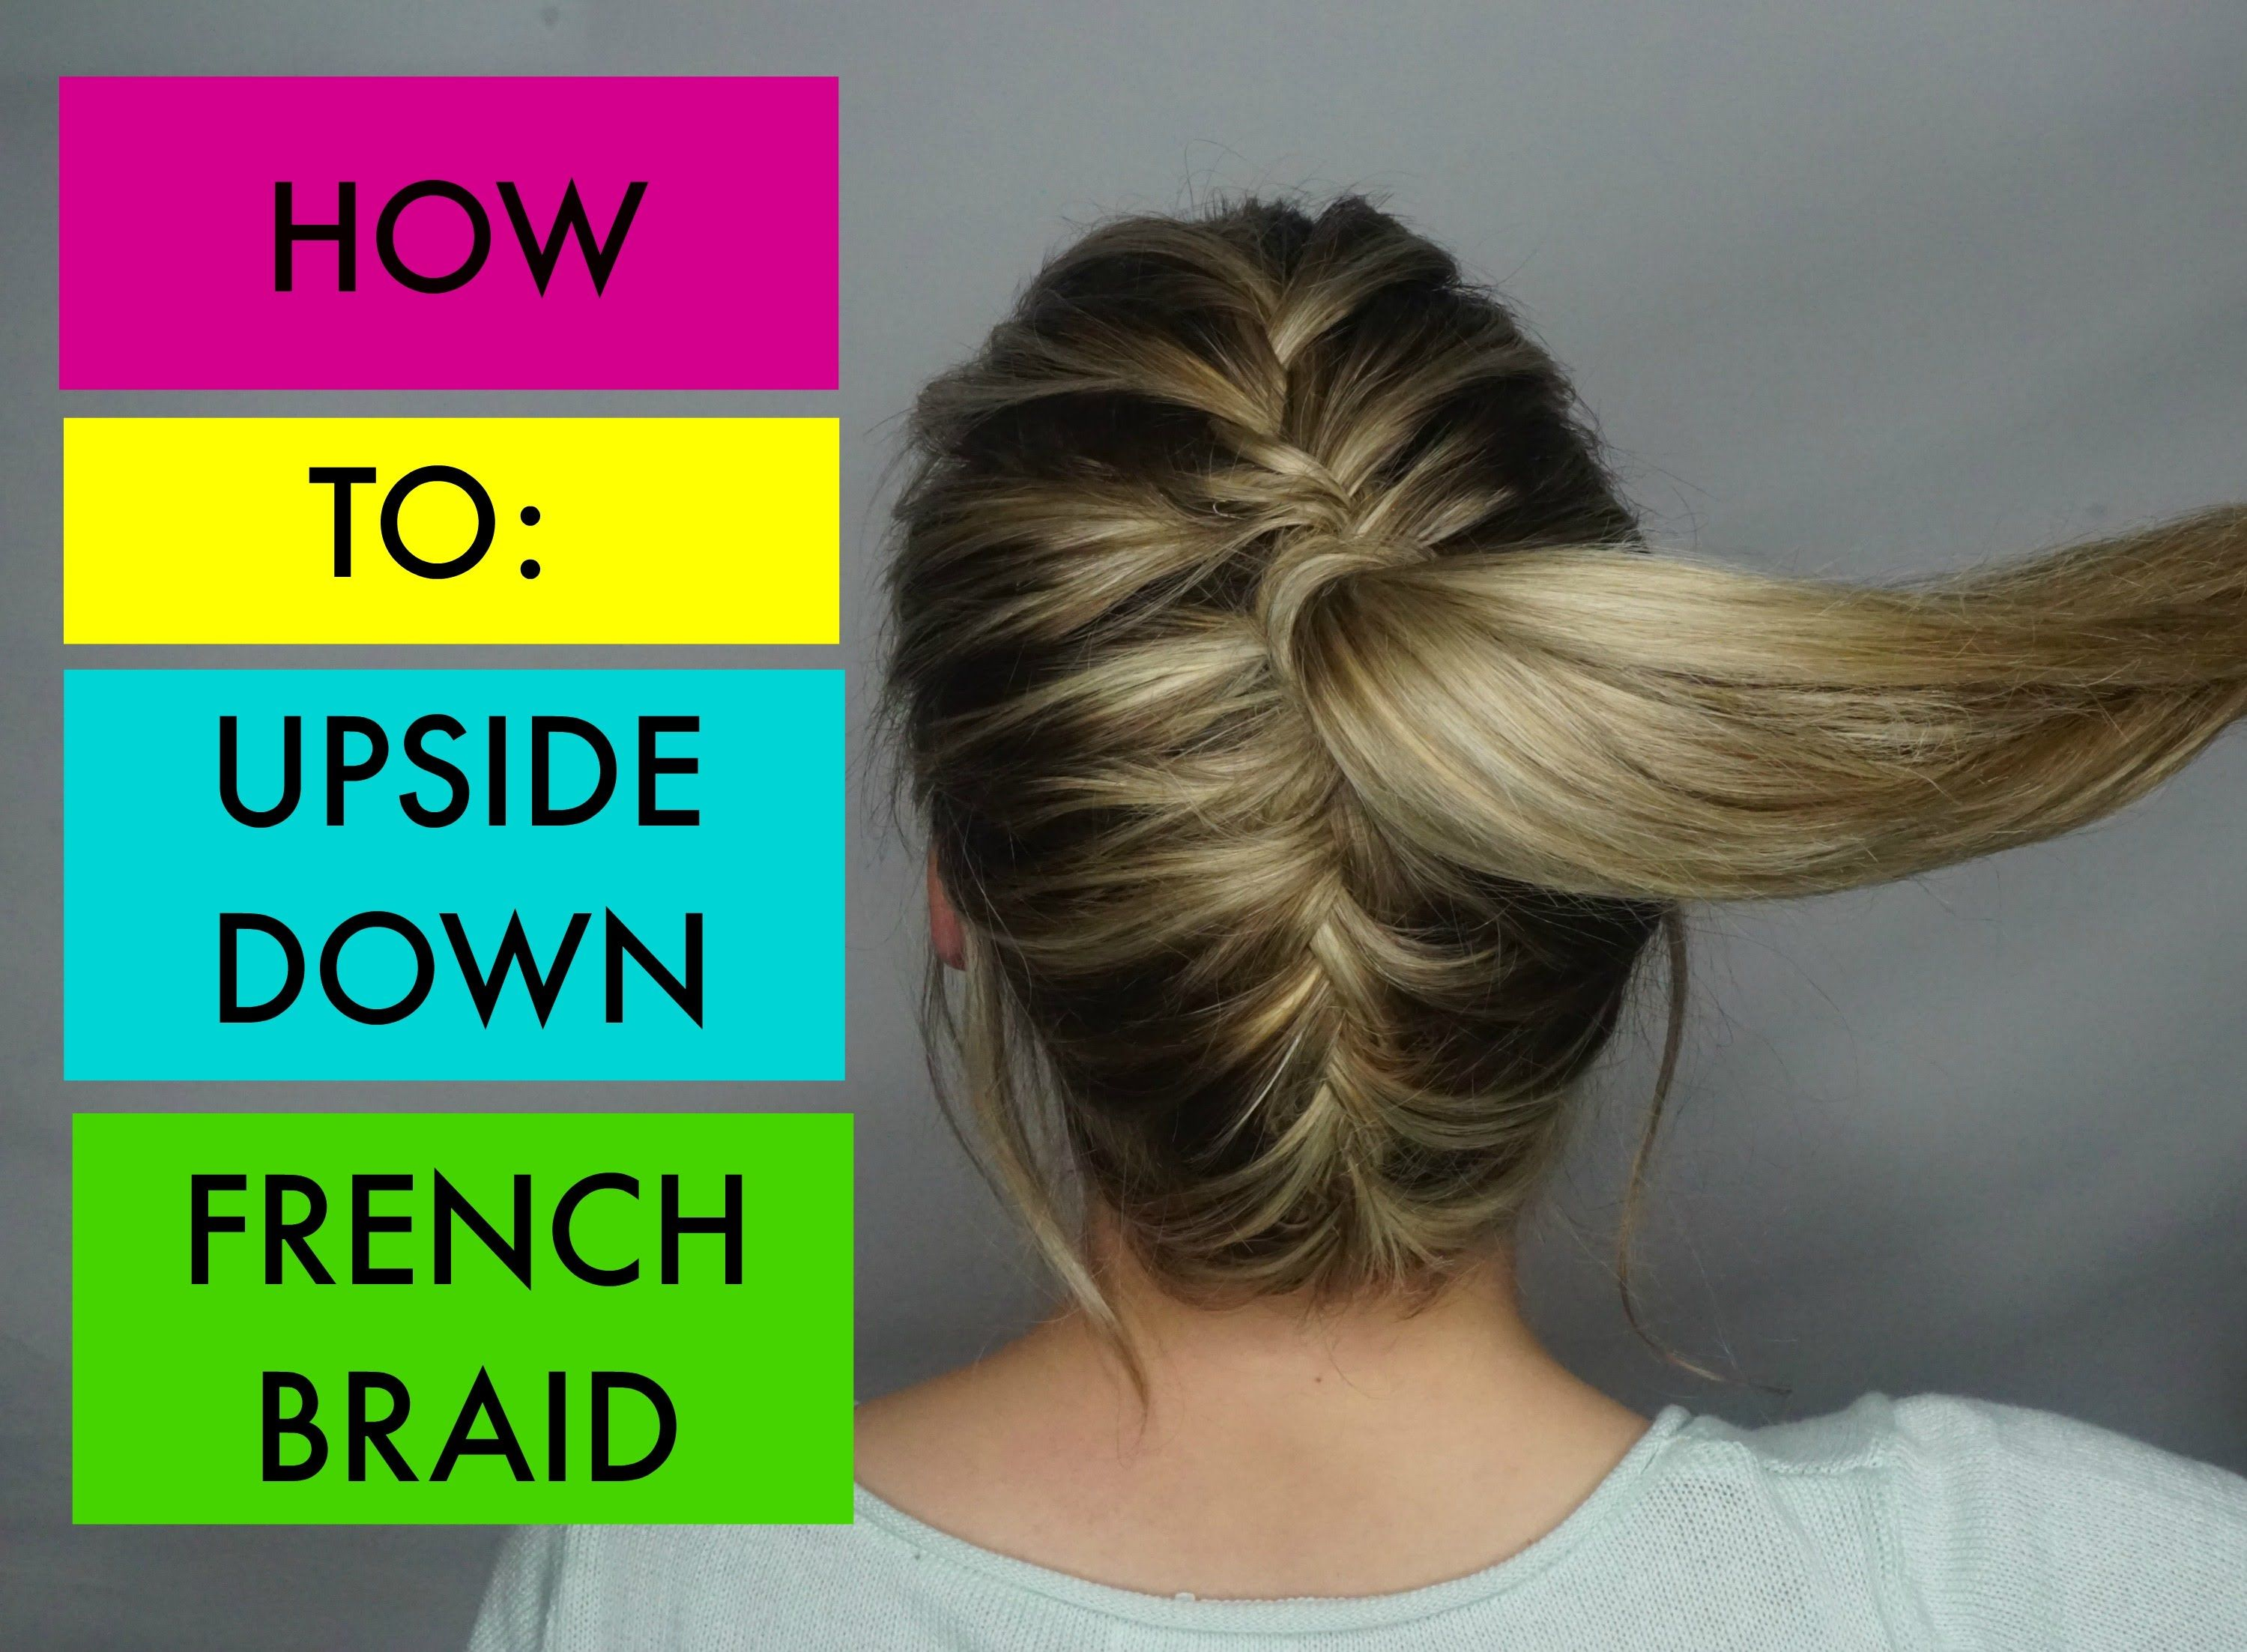 Upside down french braid great tutorial to show you how to recreate